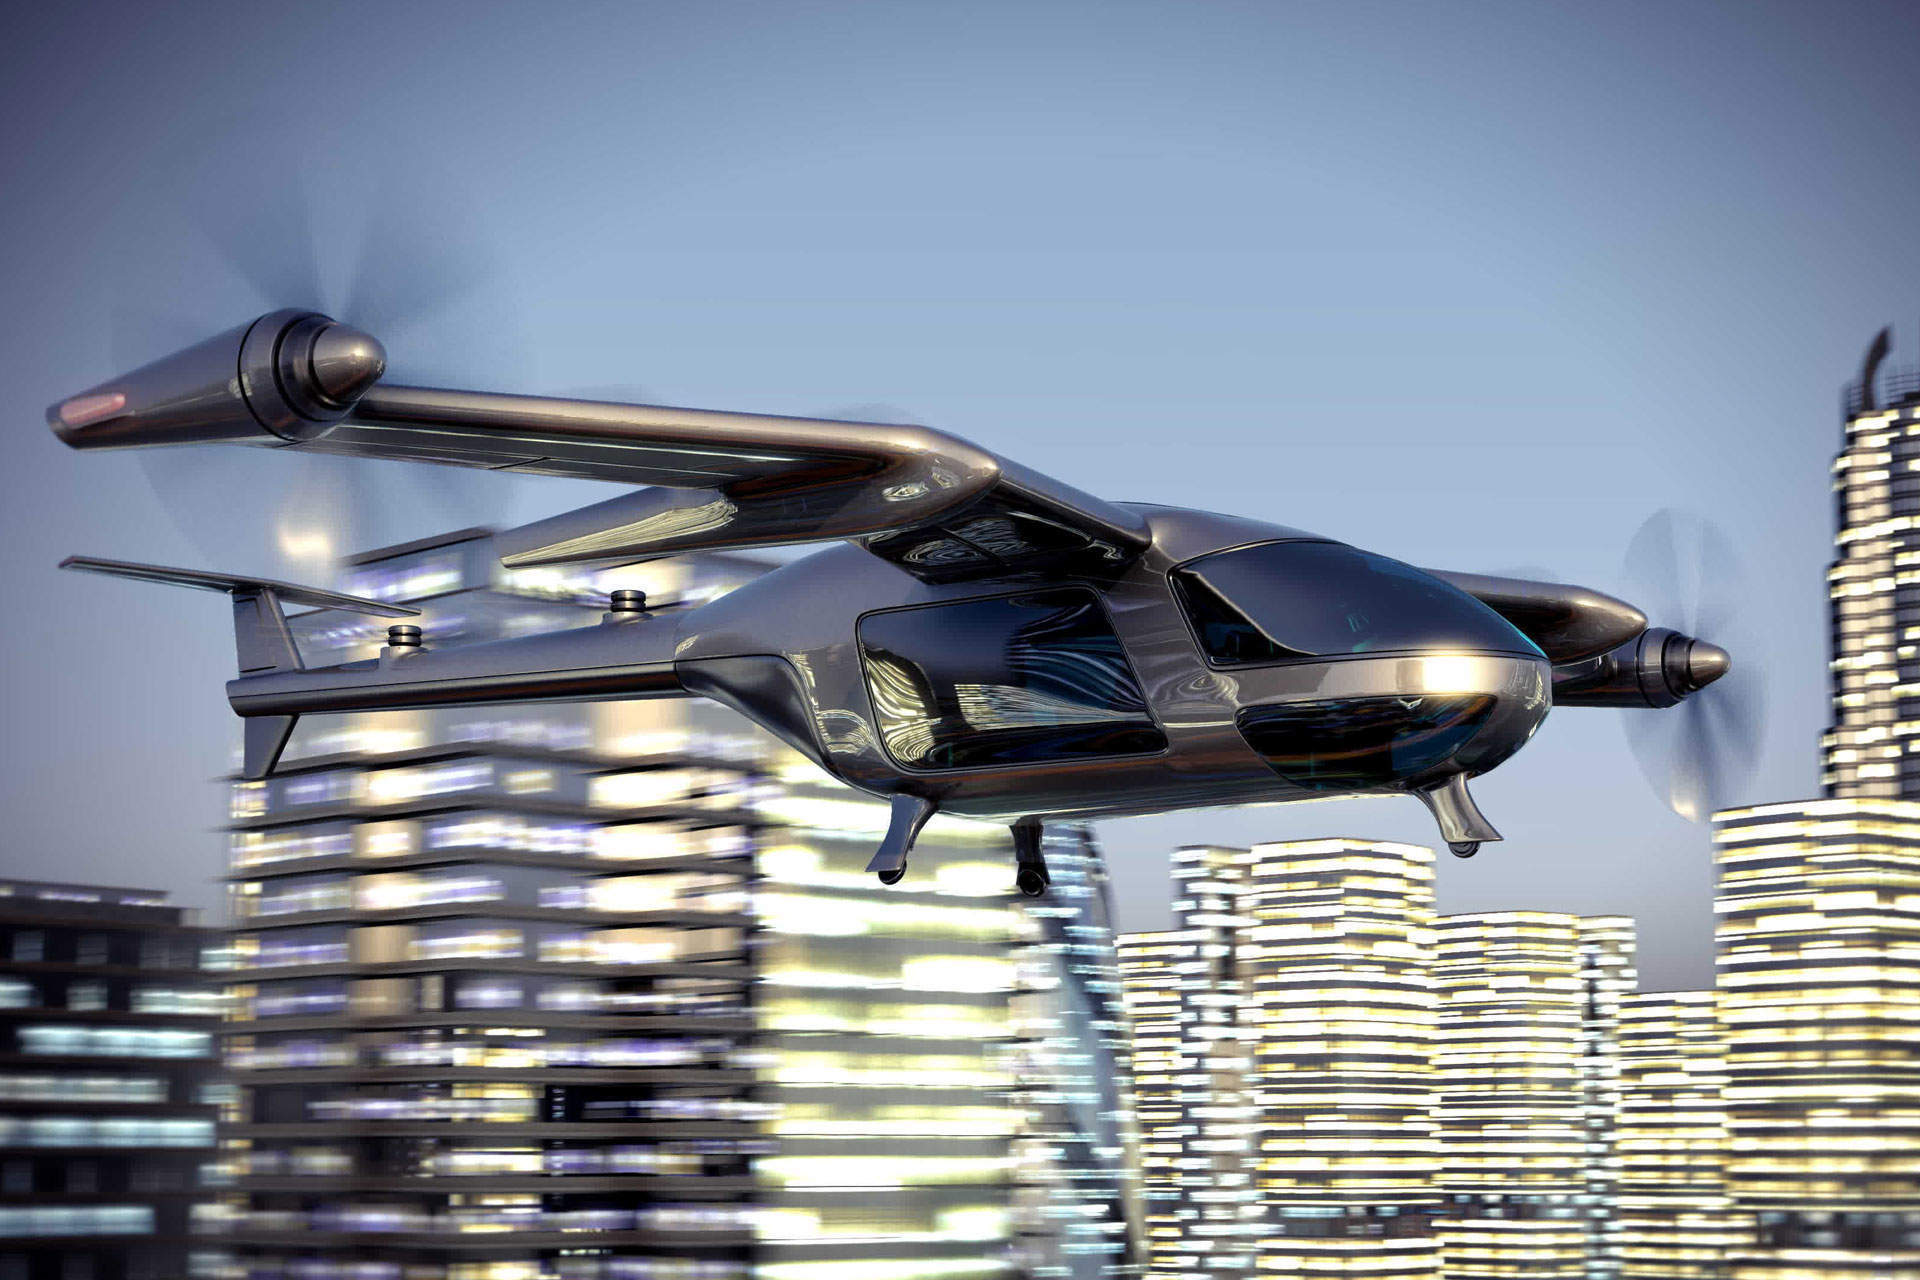 Could drone taxis take off? One expert gives his views